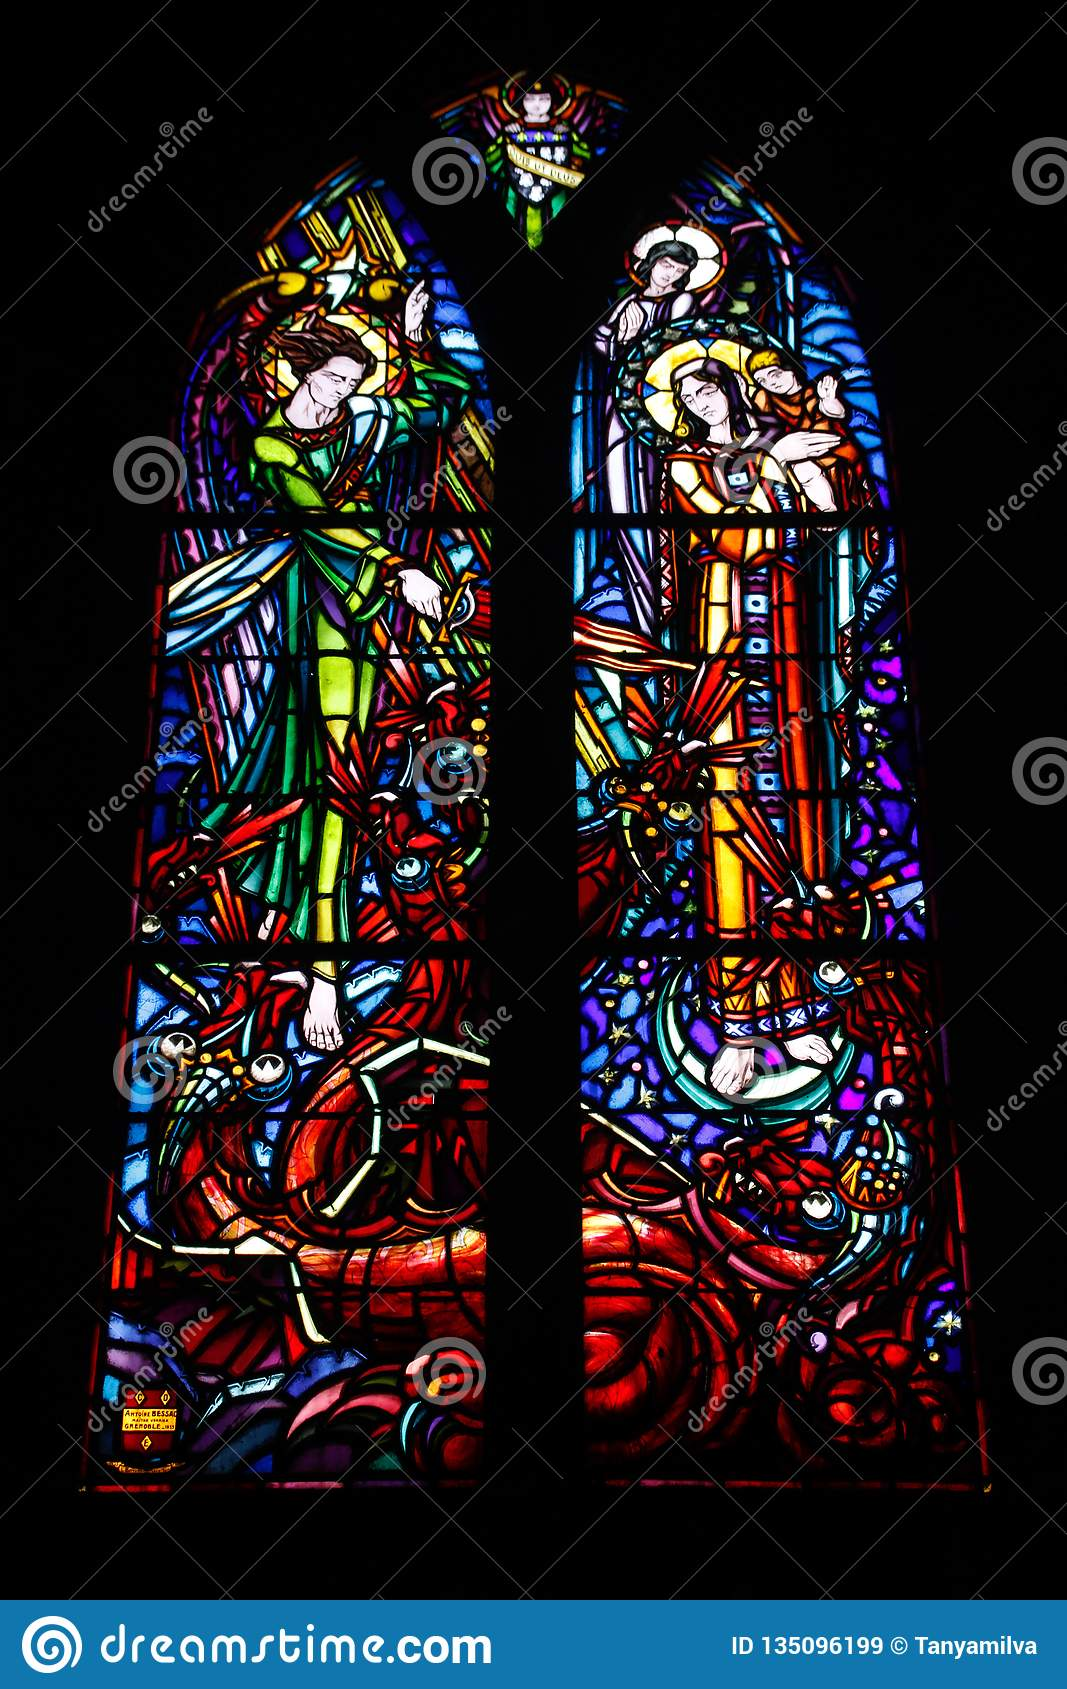 Multicolored beautiful stained glass windows in the main gothic cathedral of France